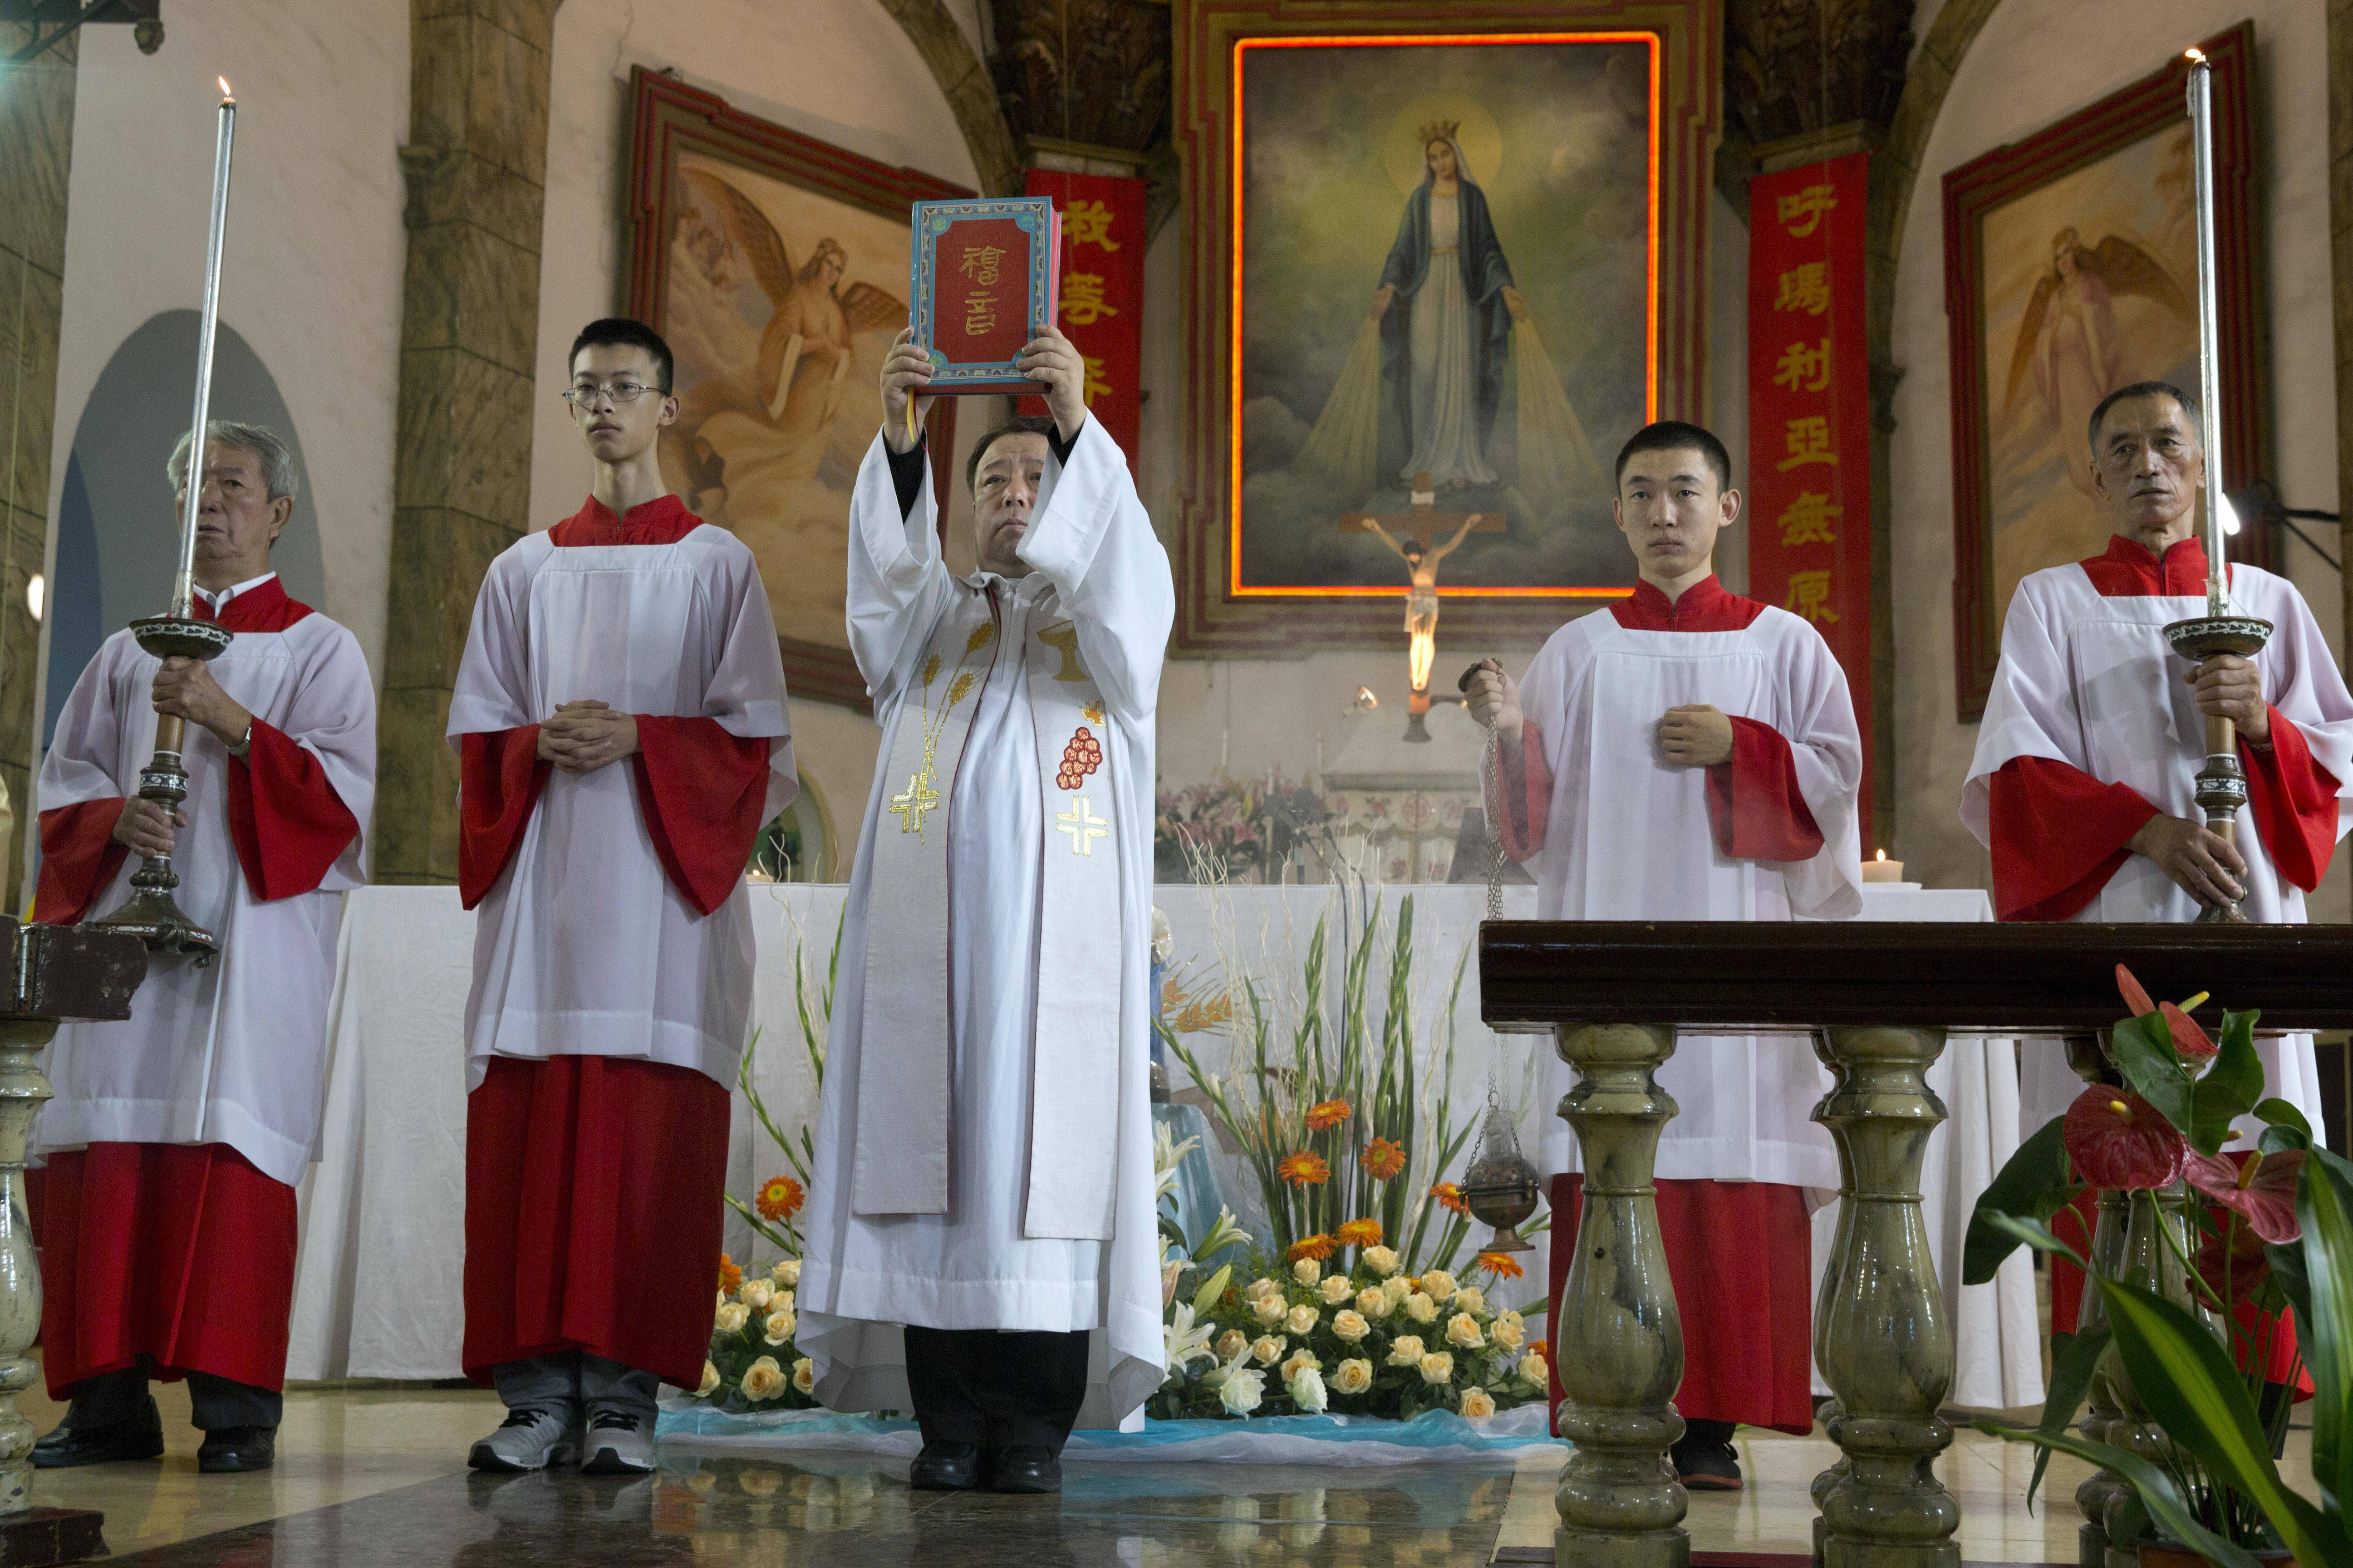 A Chinese priest holds up a bible during a mass at the 400-year-old Cathedral of the Immaculate Conception in Beijing, China, Friday, Aug. 15. Chinese Catholics on Friday cheered Pope Francis' visit to neighboring South Korea, saying they hoped his trip to their region would help end the estrangement between Beijing and the Vatican. However, China's entirely state-run media imposed a virtual news blackout on his visit, ensuring the public at large would know little about Francis' activities.